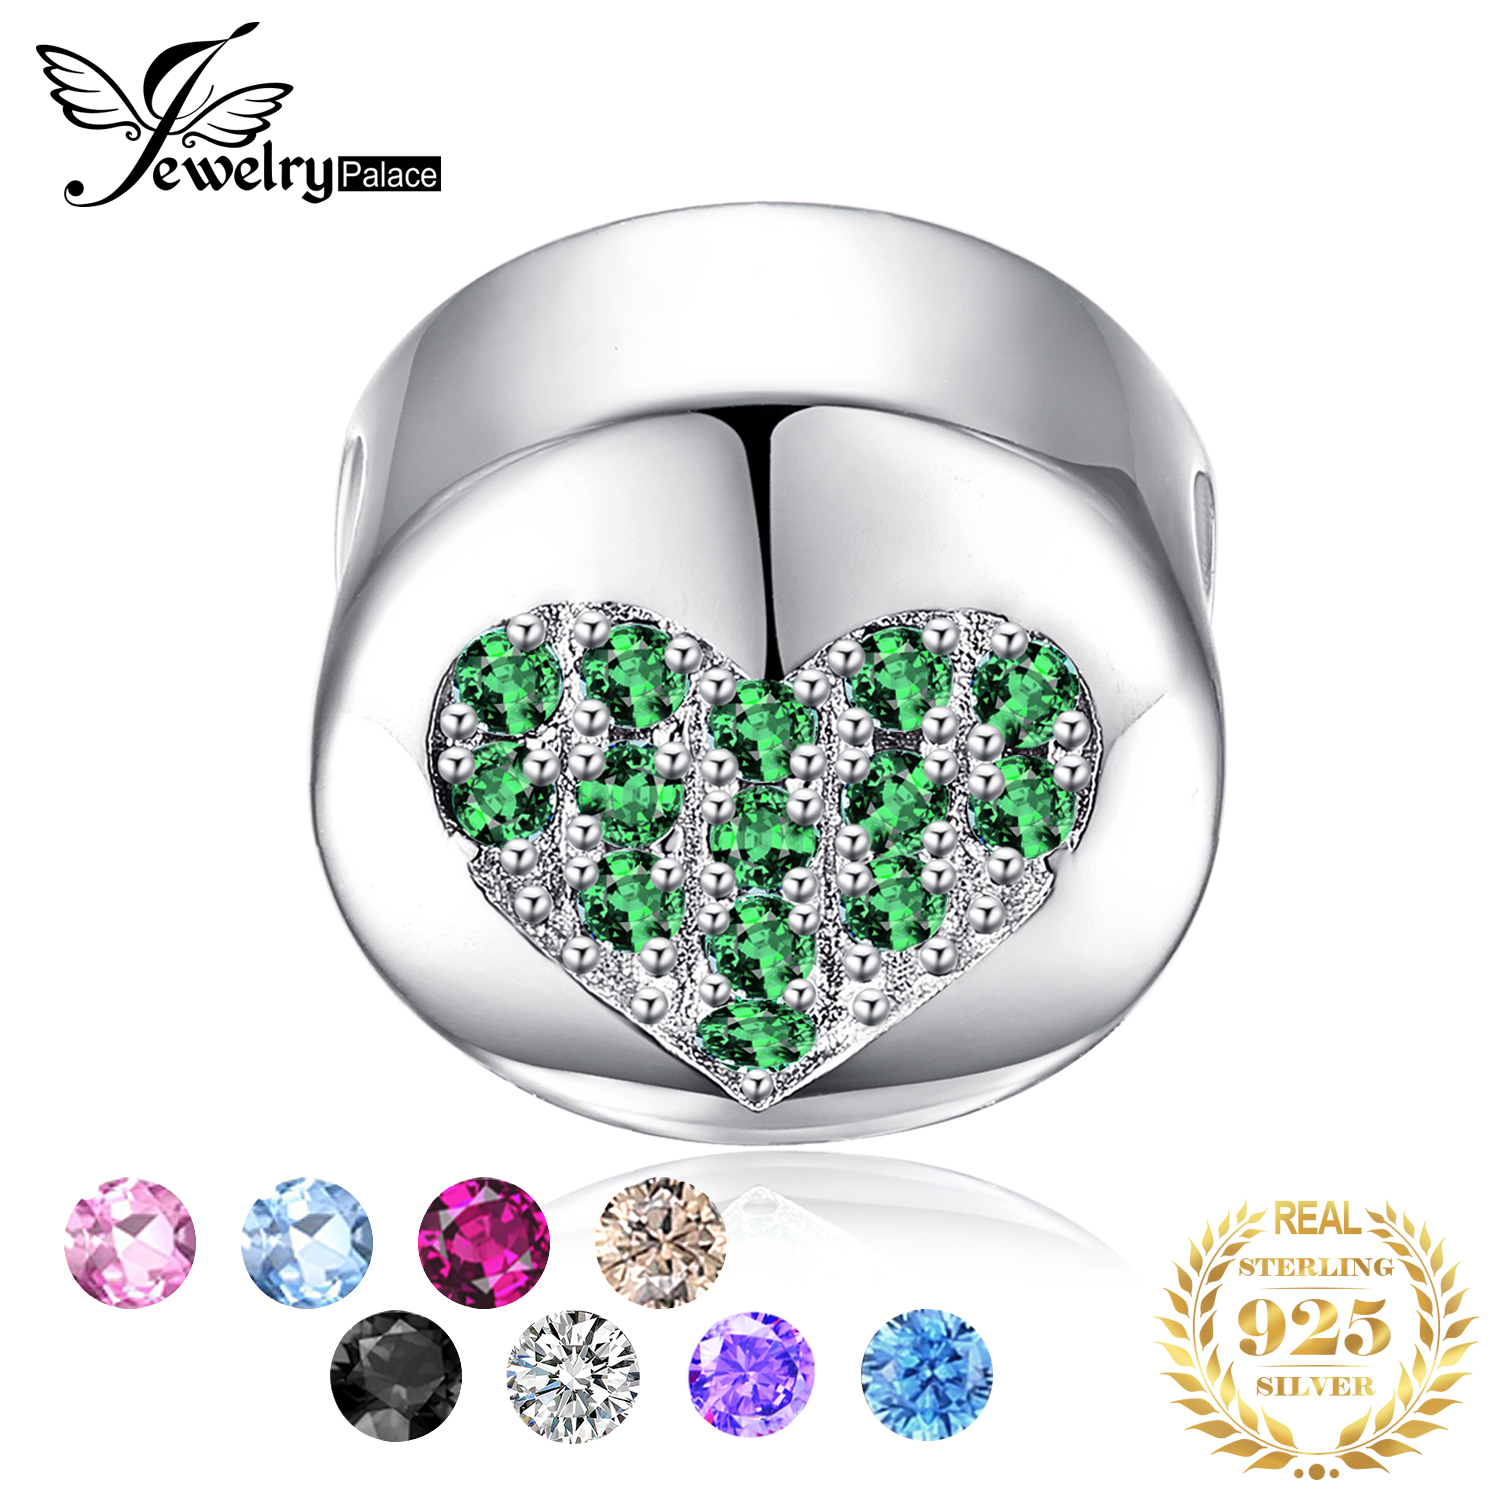 JewelryPalace Birthstone 925 Sterling Silver Beads Charms Original For Bracelet original Jewelry Making